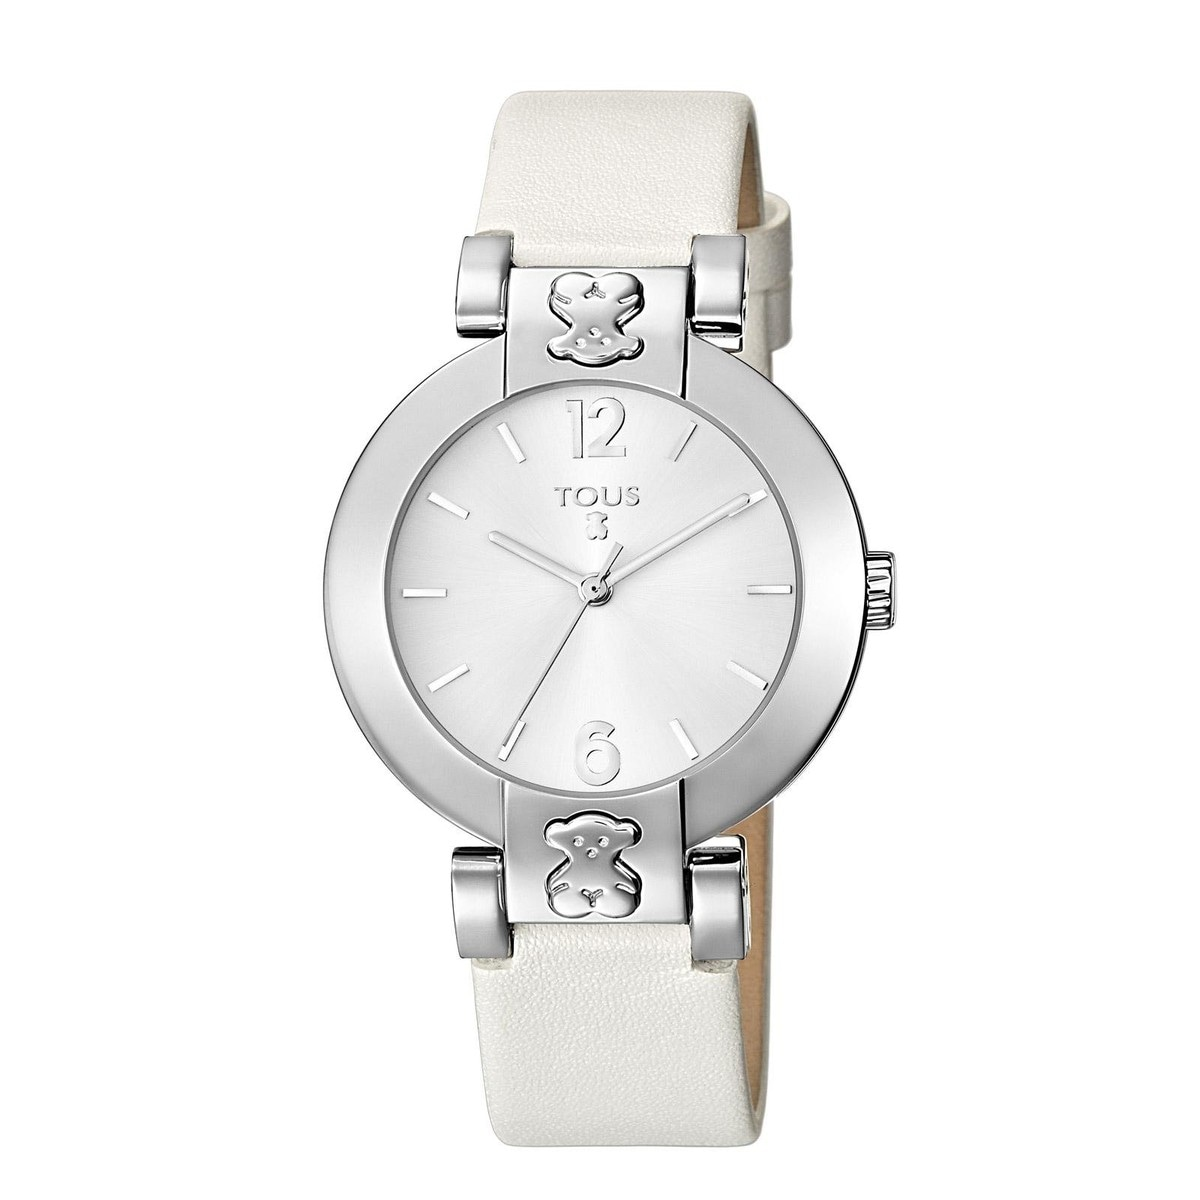 Steel Plate Round Watch with white Leather strap